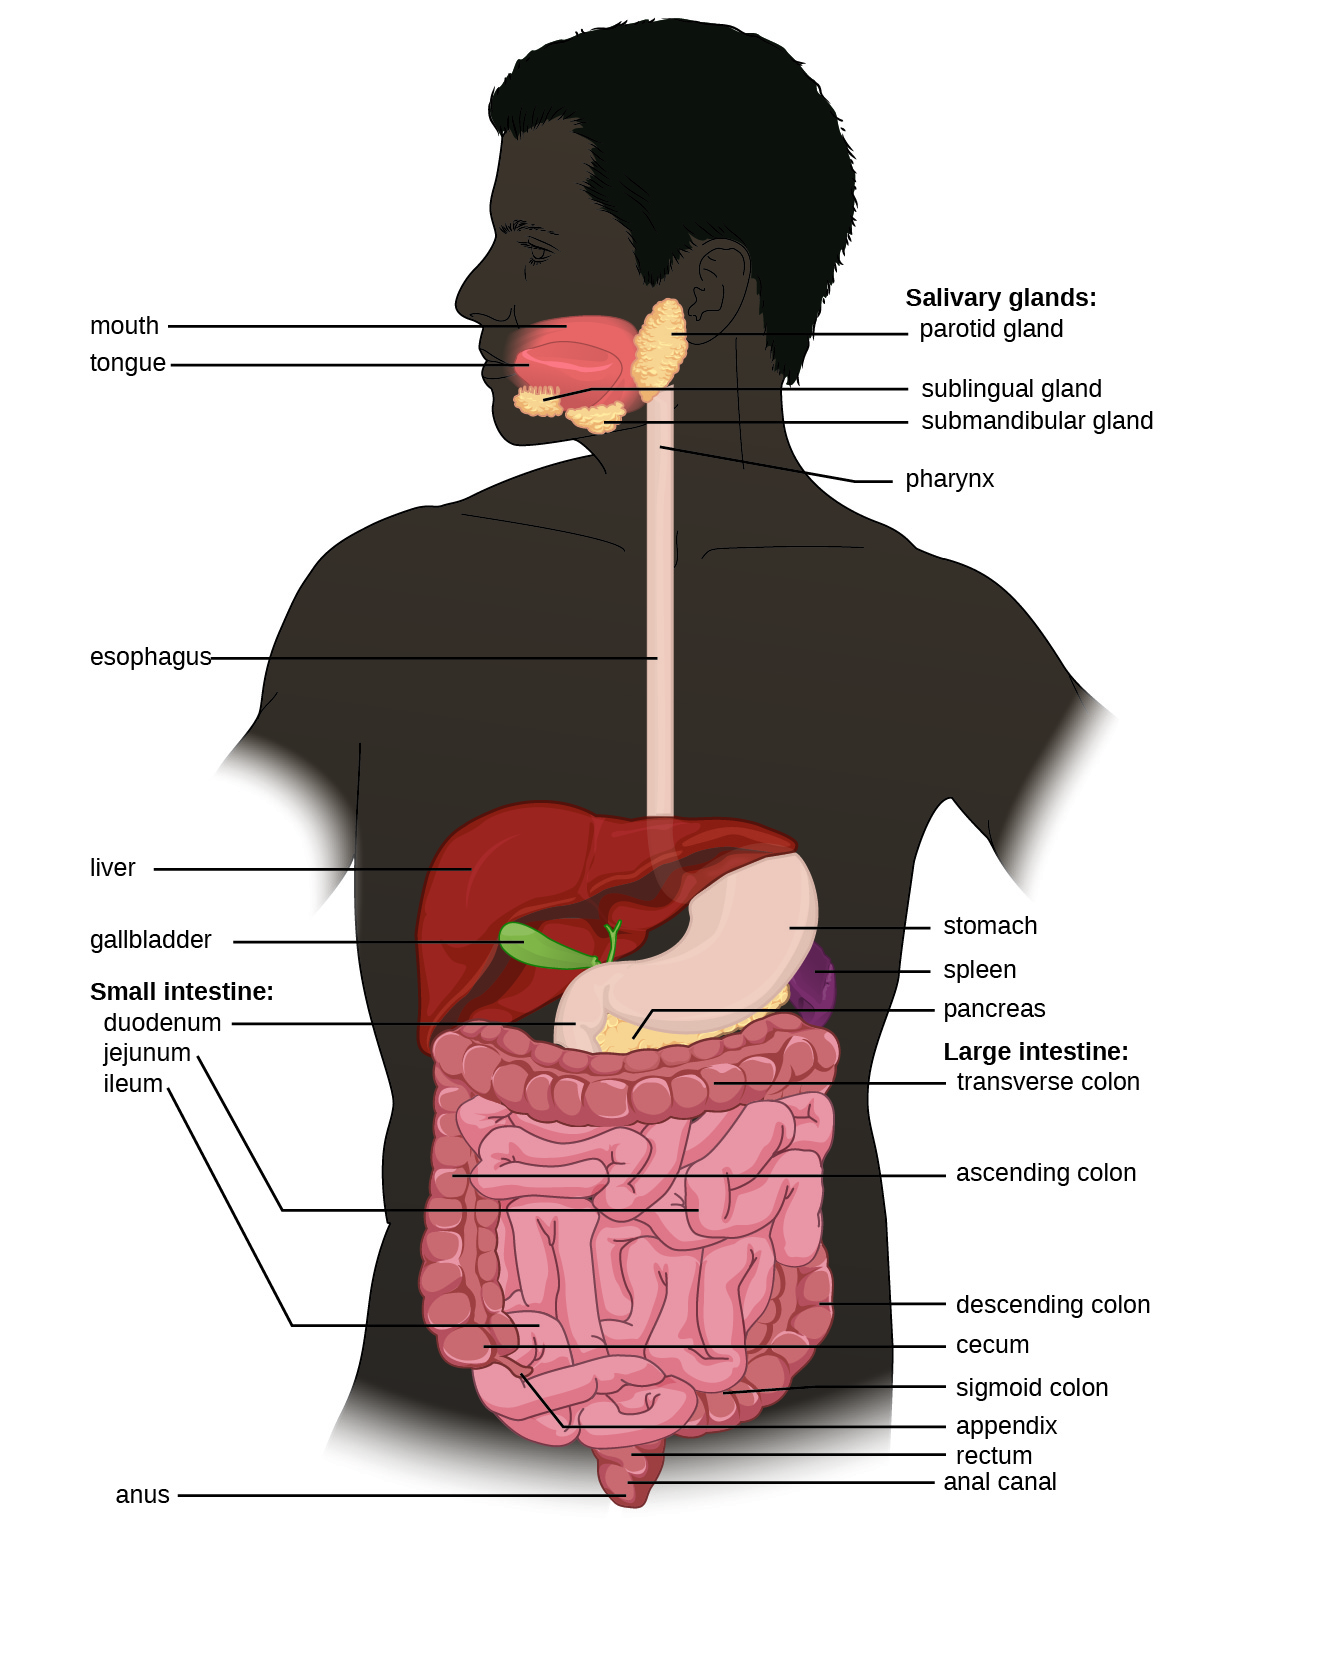 Diagram of the digestive system. The system begins with the mouth and tongue. There are salivary glands in this region: the sublingual gland is under the tongue, the submandibular gland is below the jaw and the parotid gland is in the very back of the mouth. The mouth leads to the pharynx (a tube) that leads to the esophagus, that leads to the stomach, that leads to the small intestines. The small intestine is divided into 3 regions: first is the duodenum, next is the jejunim and finally the ileum. This leads to the large intestines which is divided into  regions: first the cecum, then the ascending colon, then the transverse colon, then the descending colon, then the sigmoid colon, and finally the rectum, anal canal and anus.  The appendix is a small projection off the cecum. Also part of the digestive system is the large liver (above and to the right of the stomach), the gallbladder (a small sac under the liver), the pancrease (a structure below and behind the stomach) and the spleen (a structure below and to the left of the stomach).